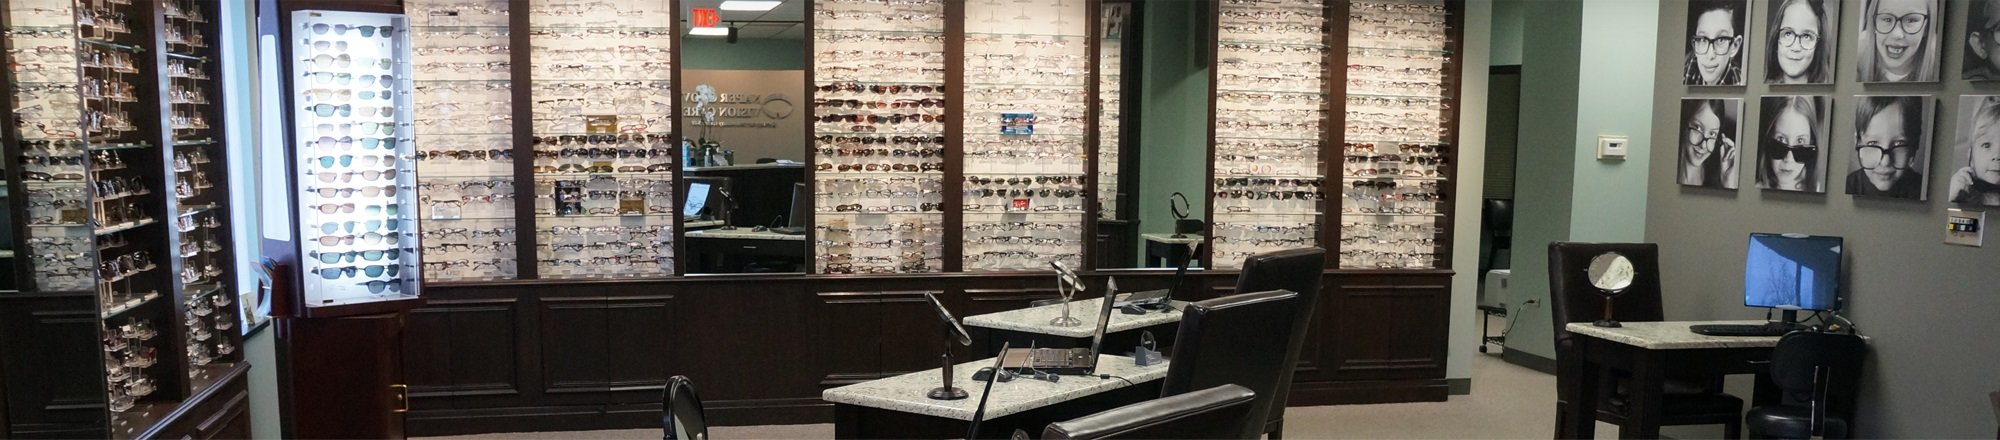 Visit us for new sunglass frames